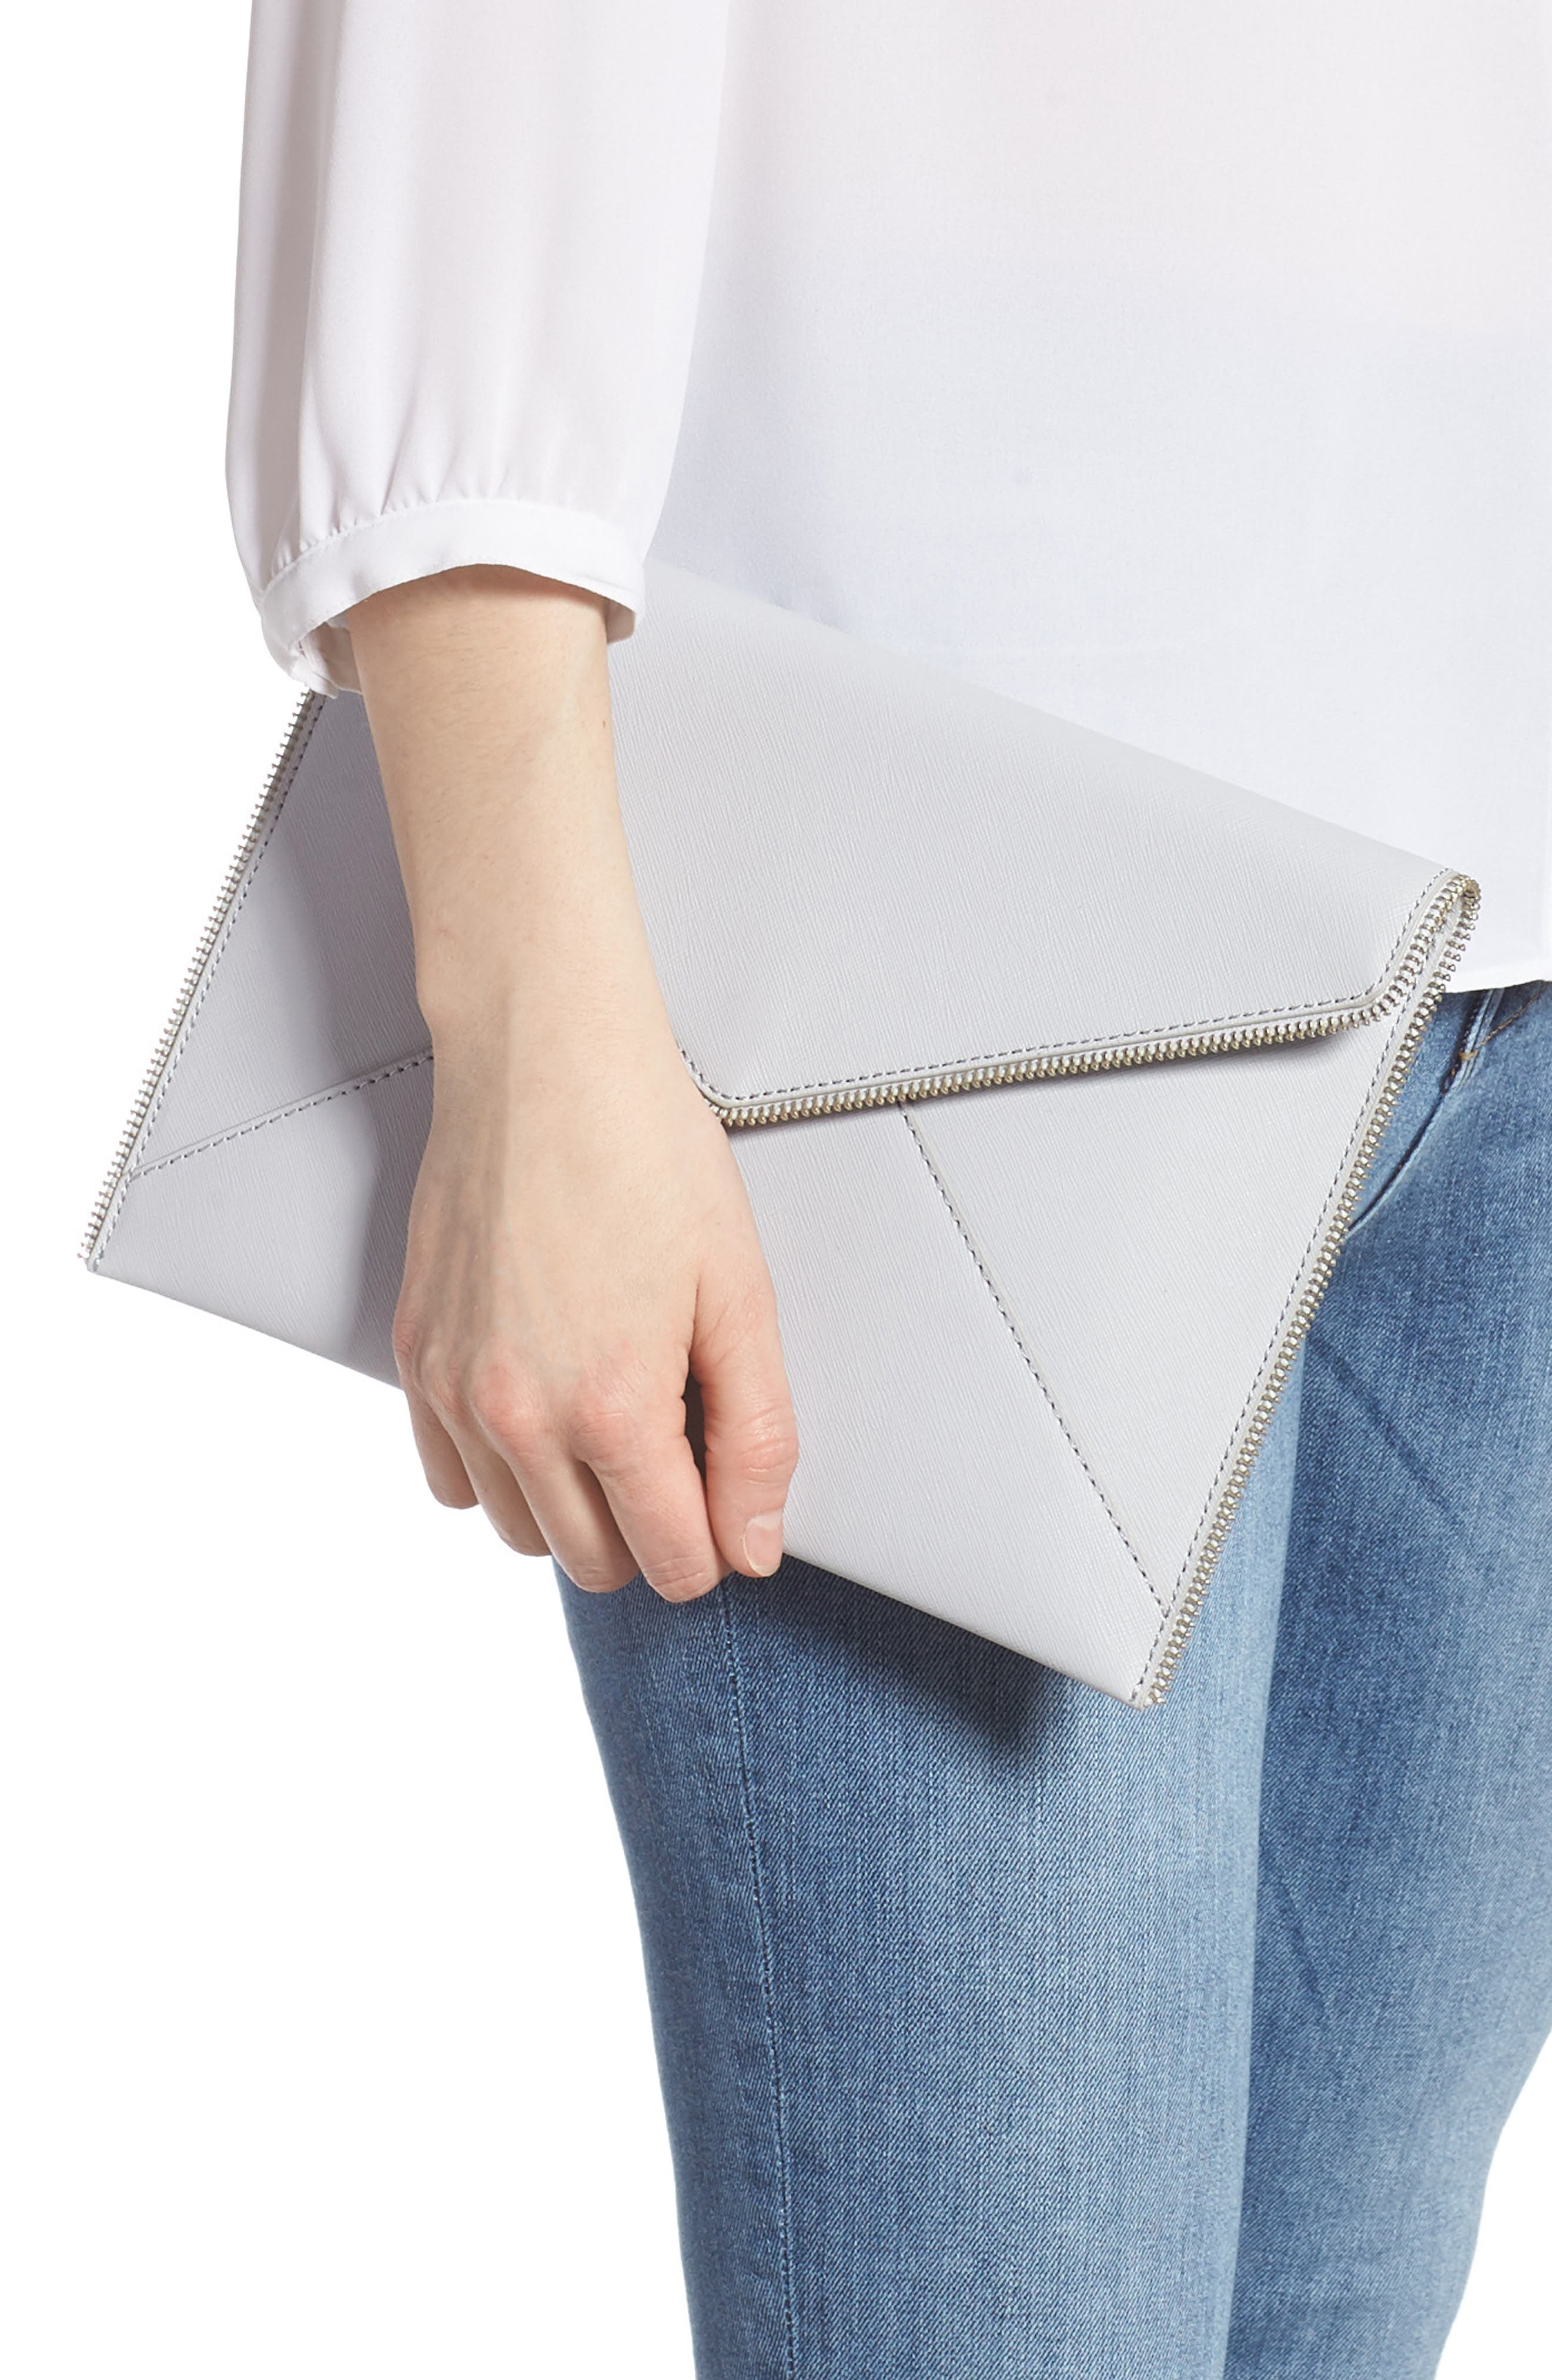 REBECCA MINKOFF, Leo Envelope Clutch, Alternate thumbnail 2, color, ICE GREY